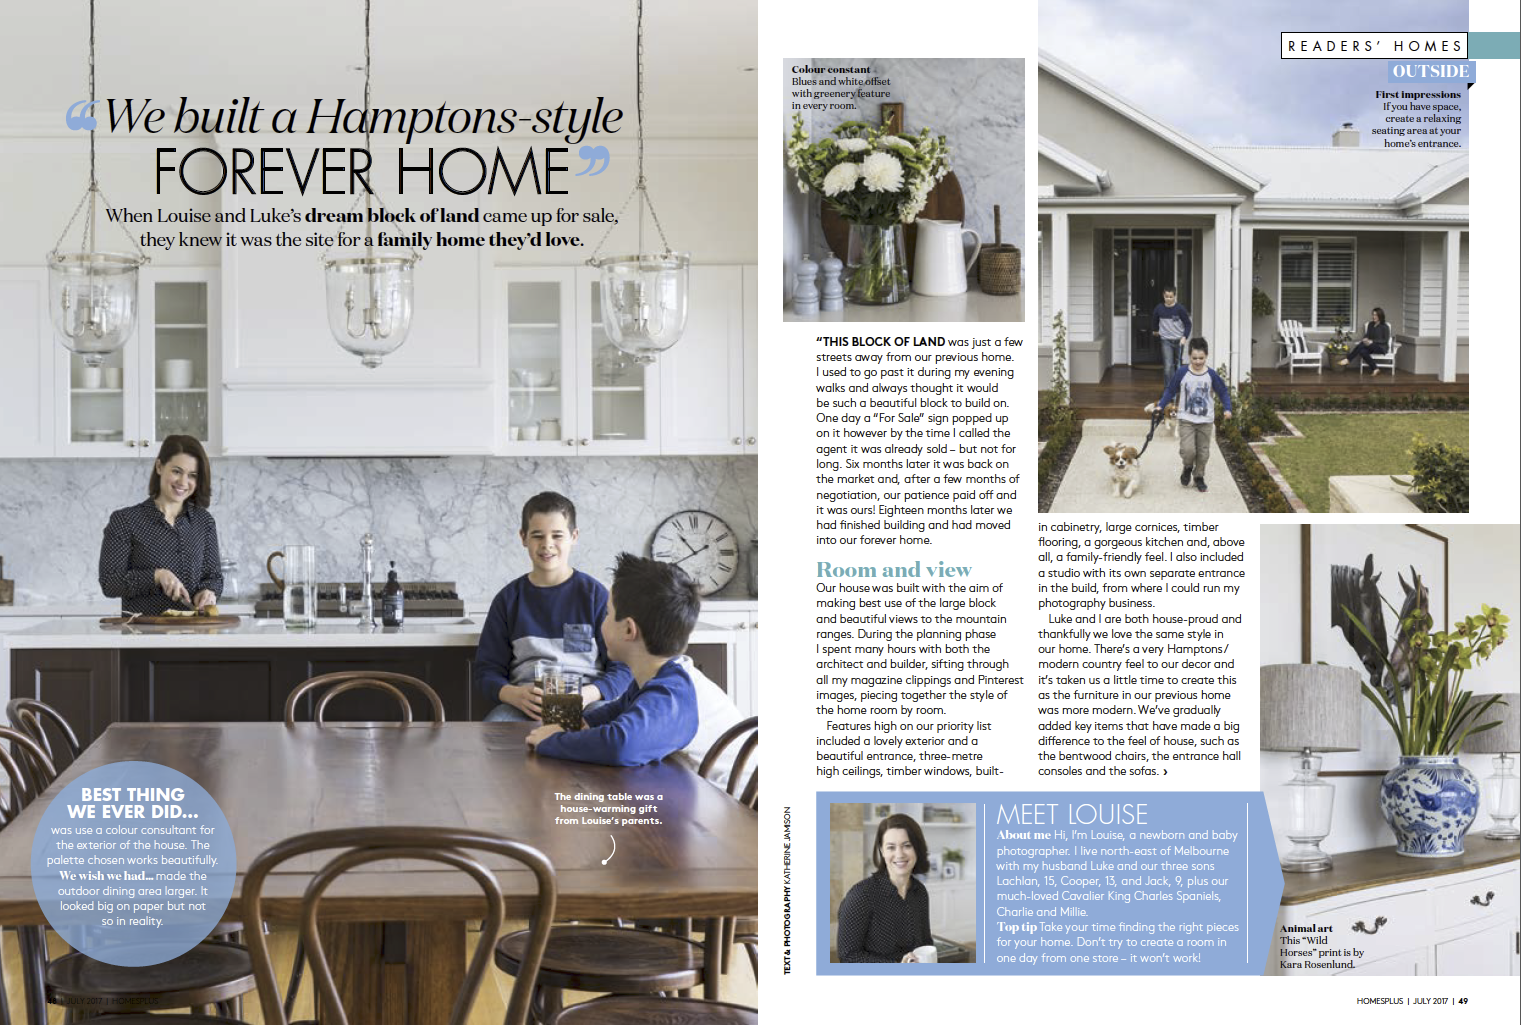 Home + Magazine - July Issue - Our Hampton Style Forever Home